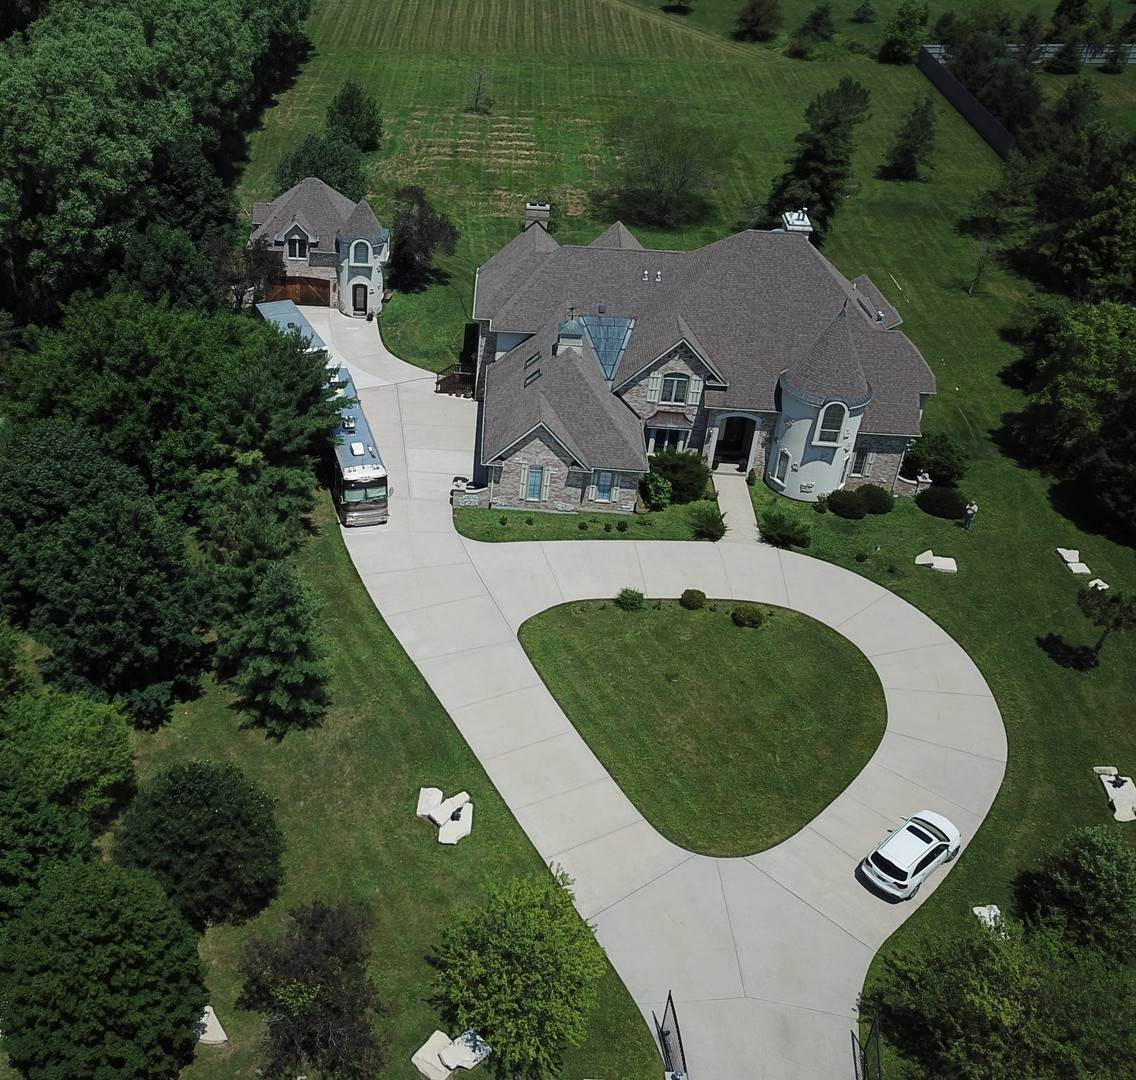 Single Family Homes for Sale at 9644 W Cheri Court Frankfort, Illinois 60423 United States